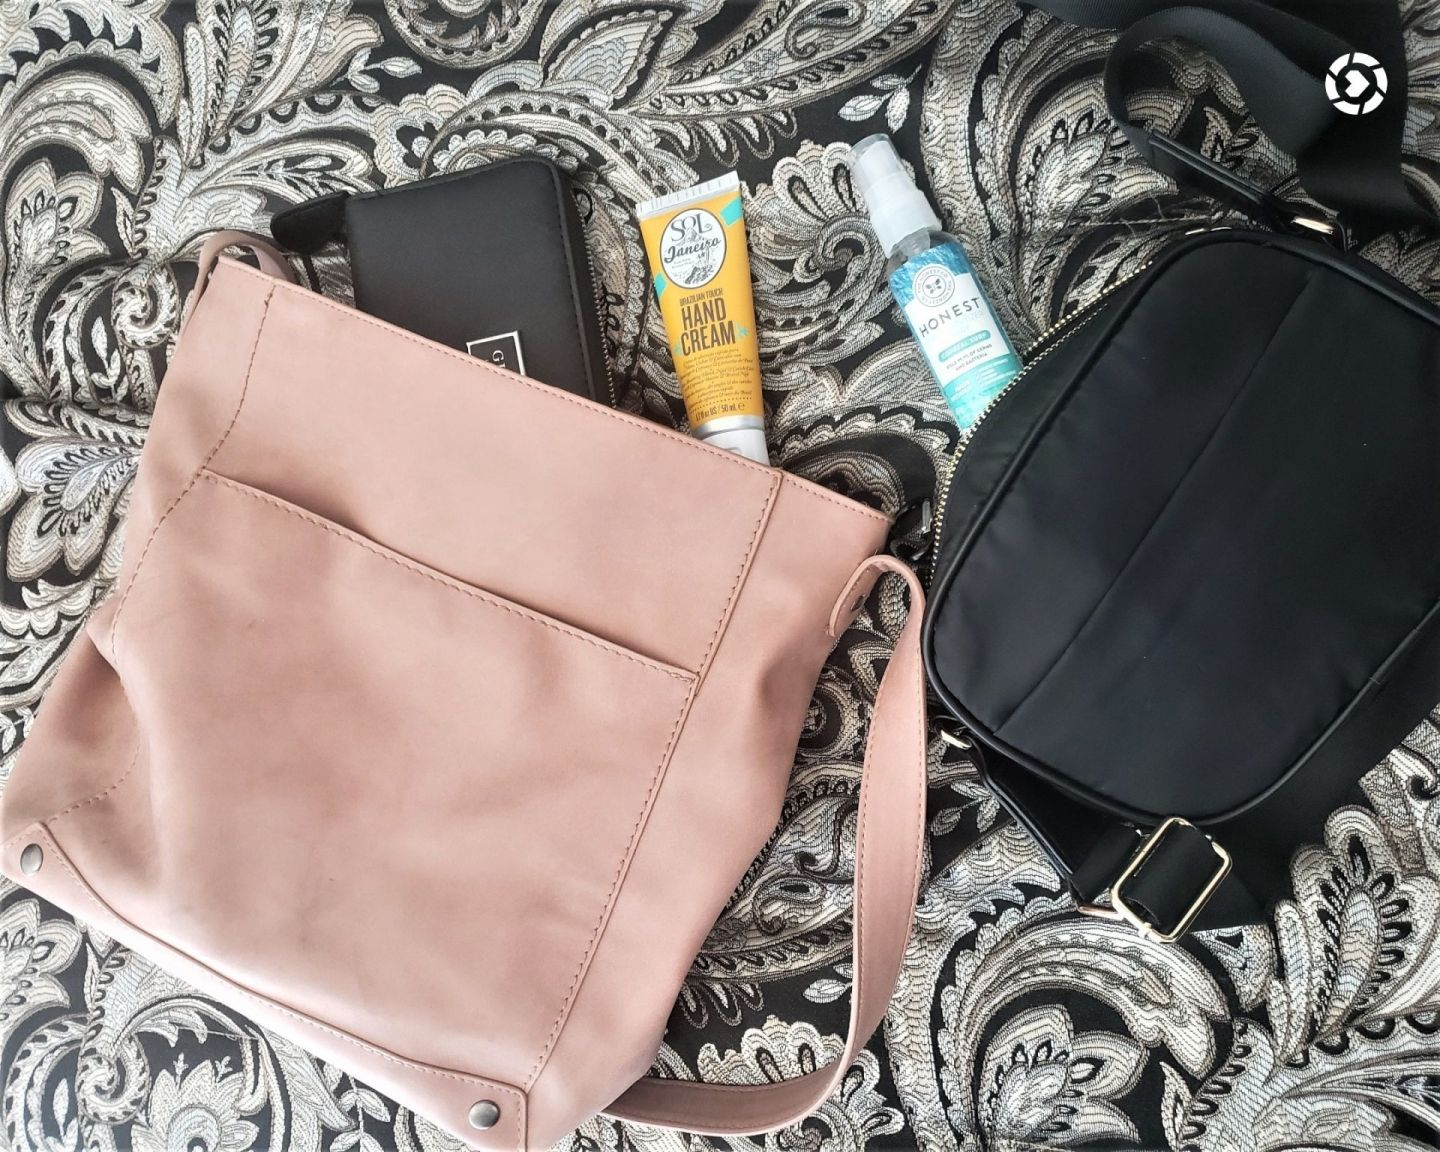 Summer Bags & Essentials 2020, What's In Your Bag?